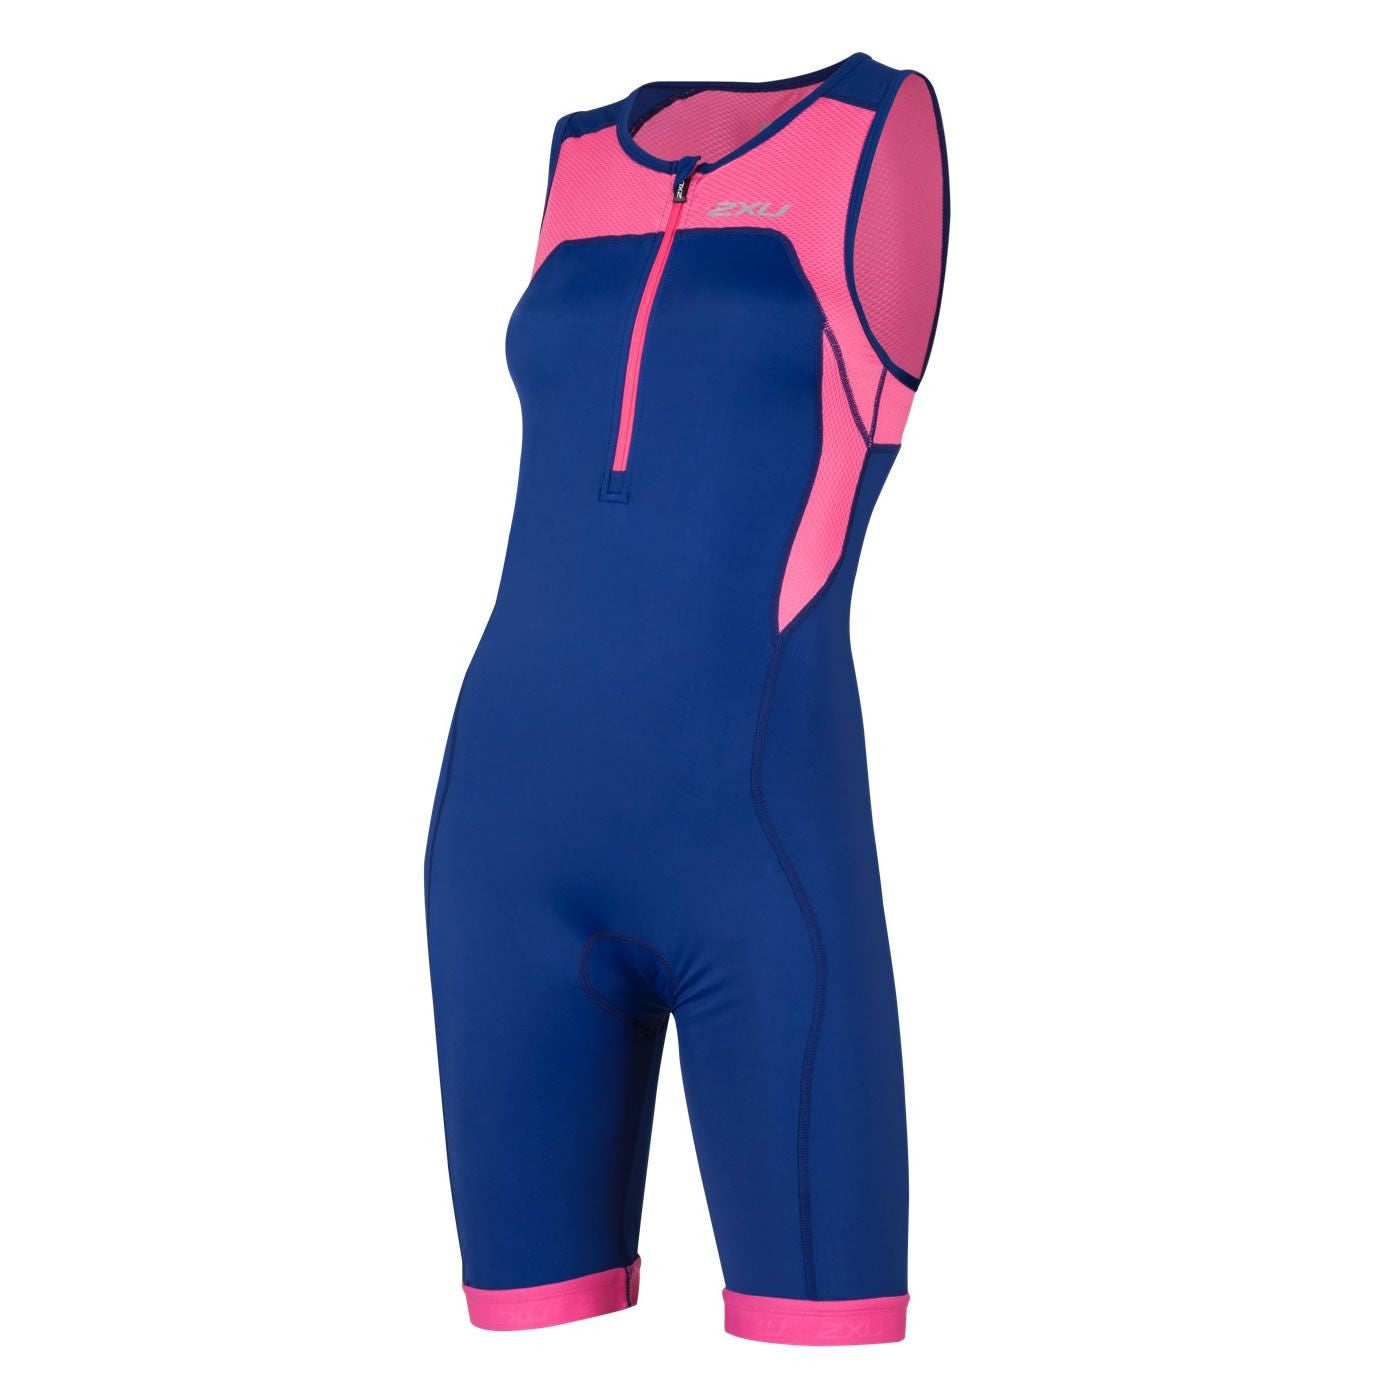 2XU Active Trisuit - Women's